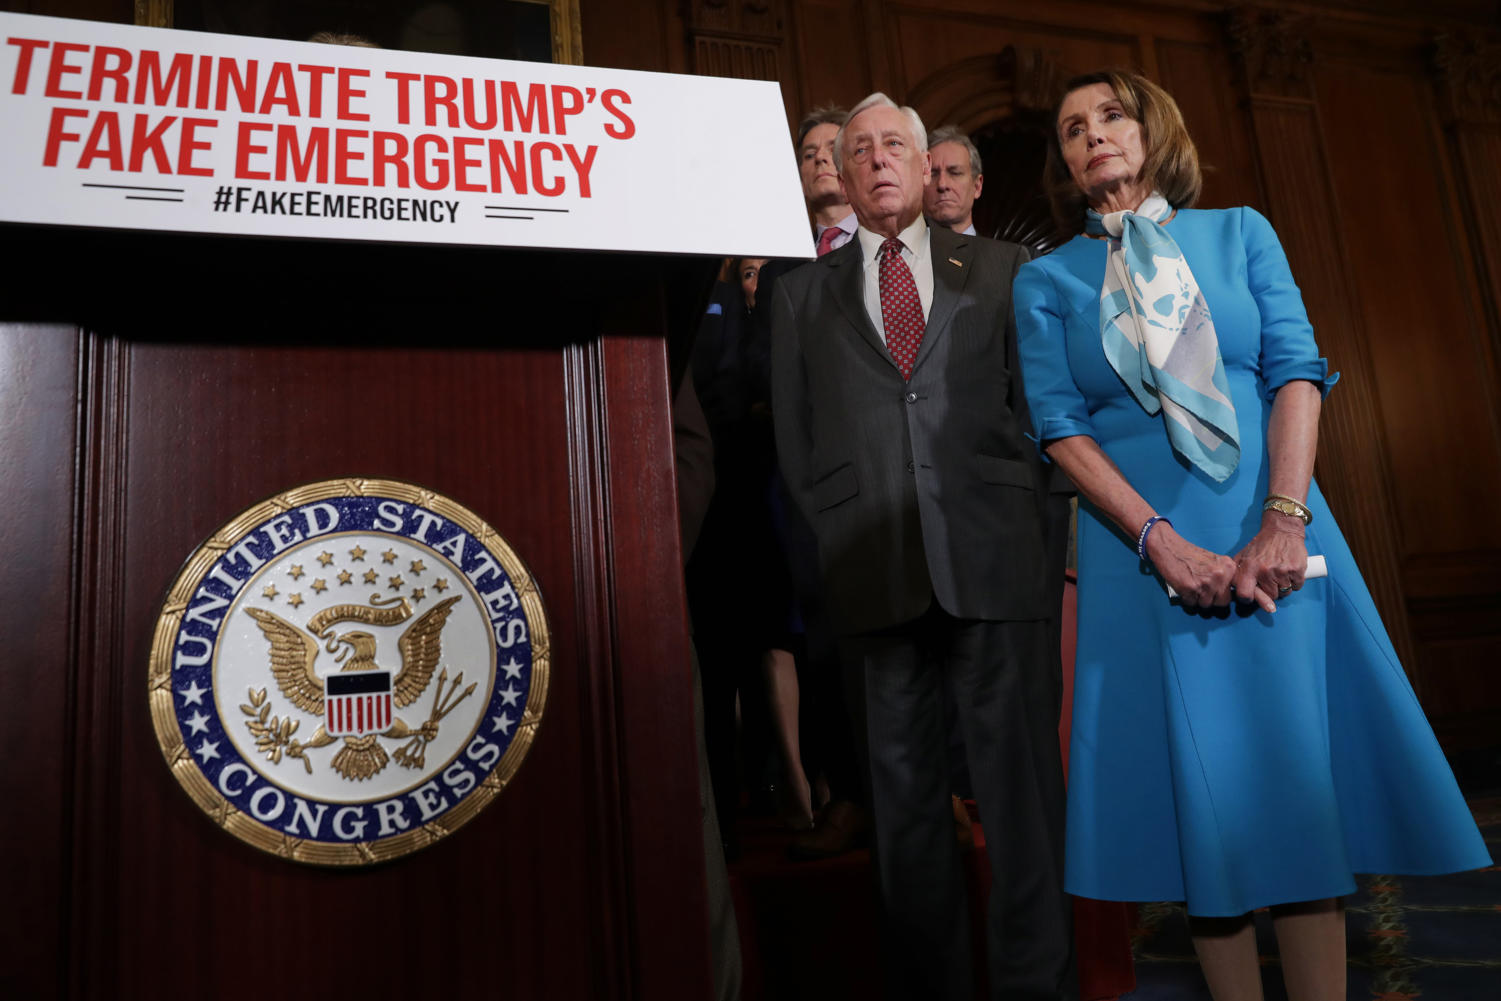 Speaker of the House Nancy Pelosi (D-CA) (R) is joined by House Majority Leader Steny Hoyer (D-MD) and other House Democrats for a news conference on the Privileged Resolution to Terminate President Donald Trump's emergency declaration Feb. 25, 2019 in Washington, D.C. The House Thursday passed a resolution to abolish Trump's declaration of a national emergency to build a U.S.-Mexico border wall.